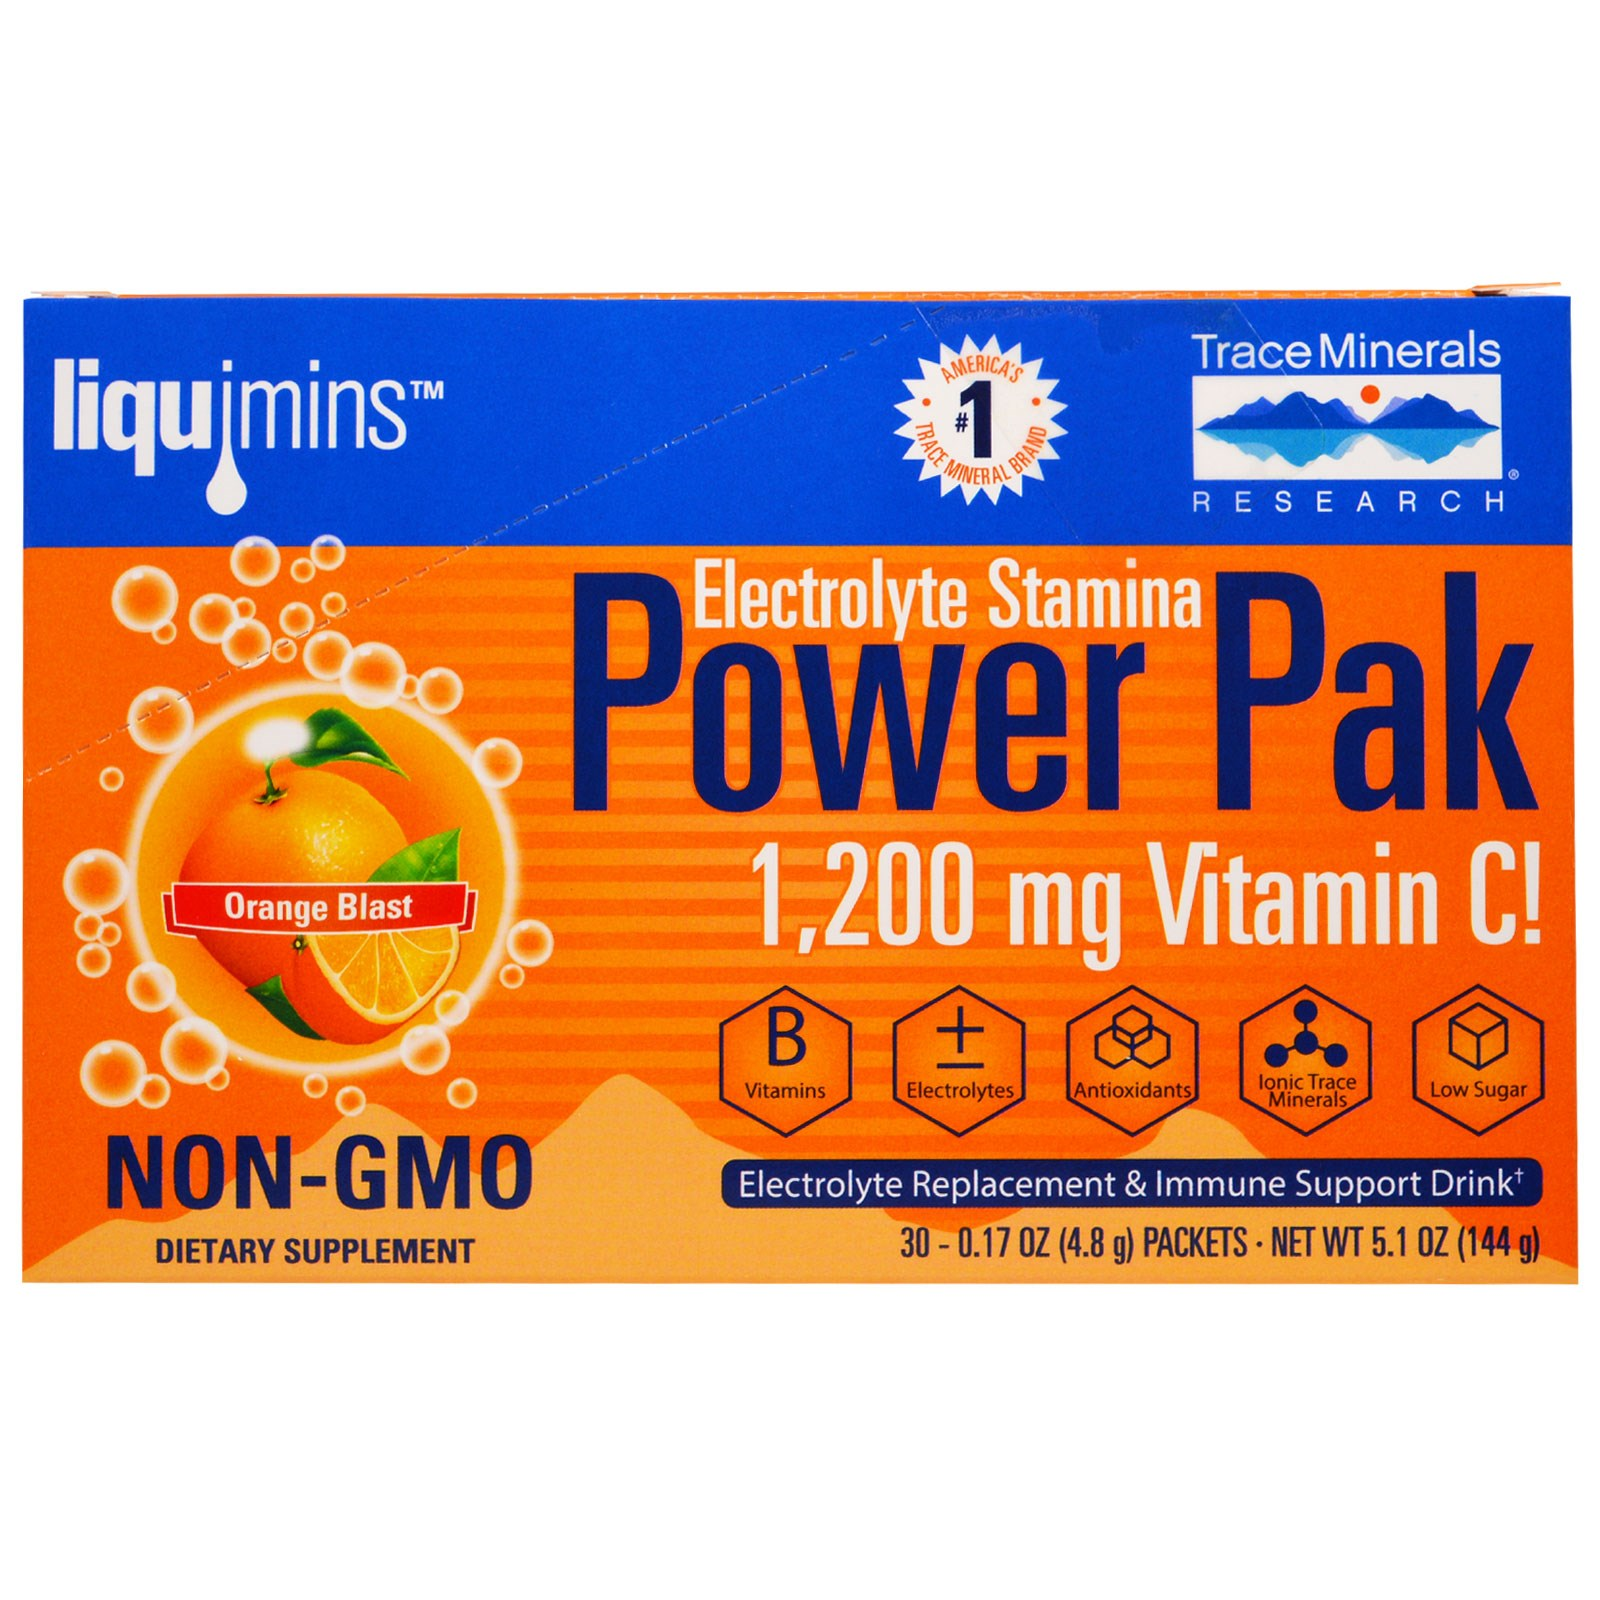 Image of Electrolyte Stamina, Power Pak, Orange Blast (30 Packets, 4.8 g Each) - Trace Minerals Research 0878941000539